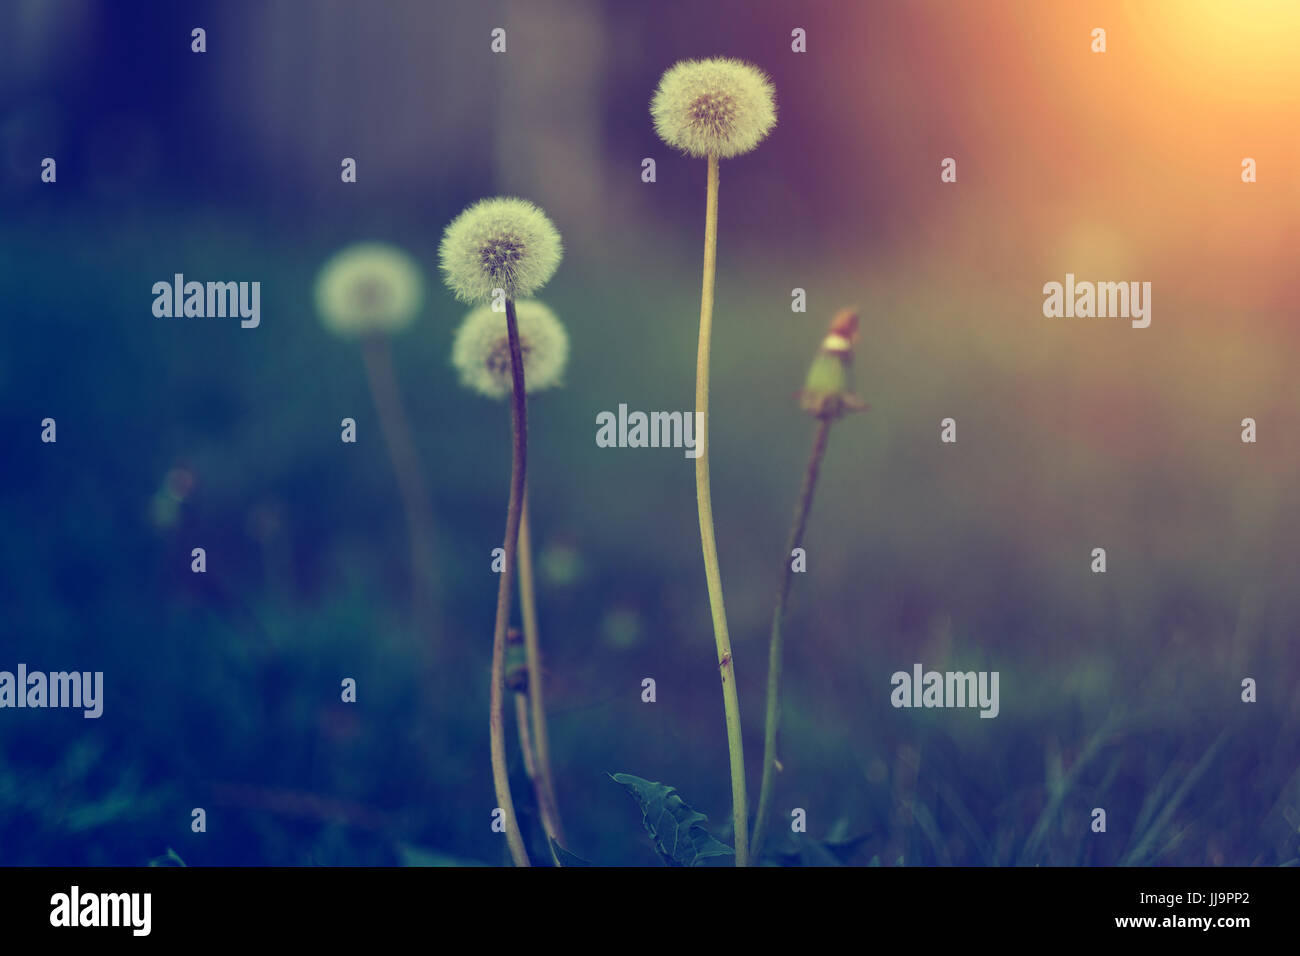 Dandelion flower in sunset. This image is exclusive for Alamy only Stock Photo